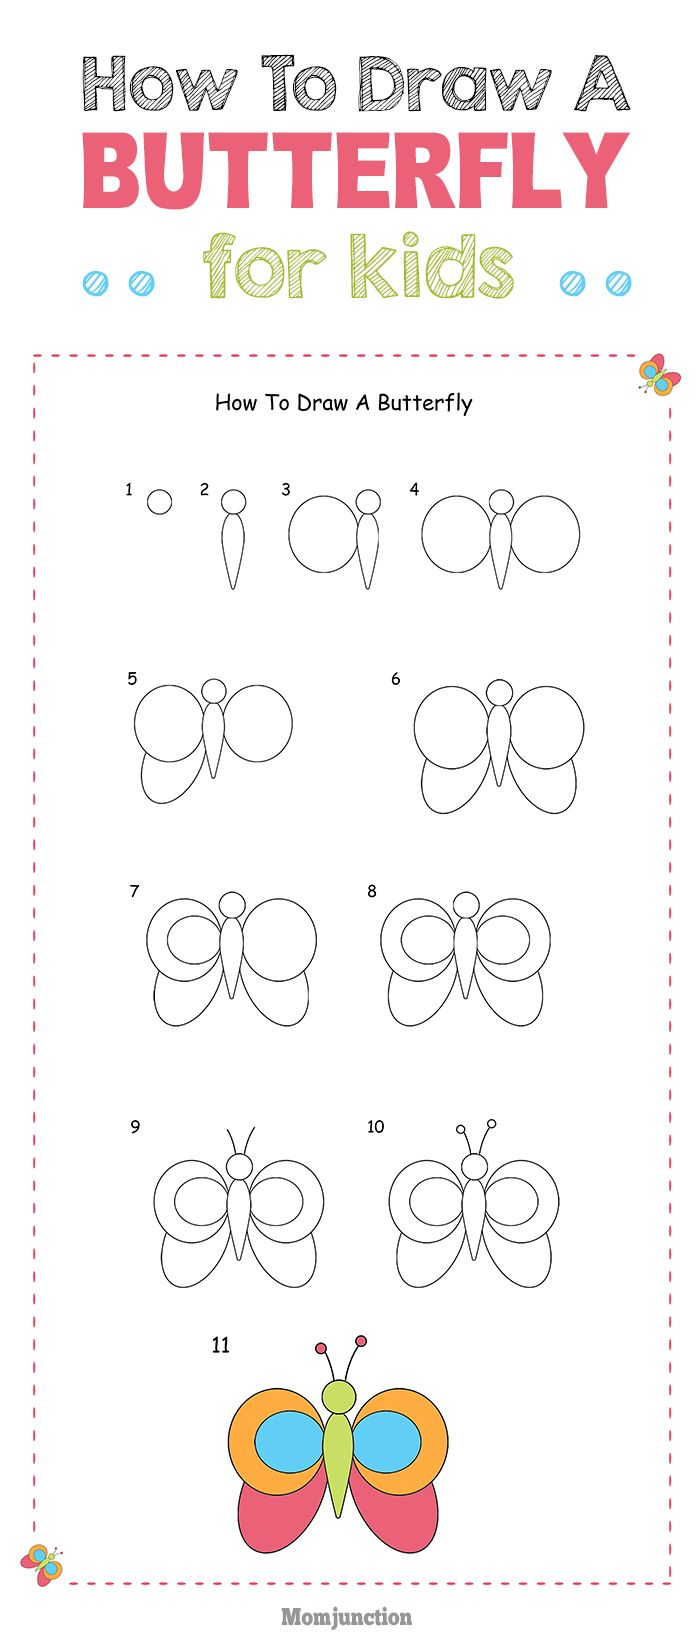 How To Draw A Butterfly For Kids?